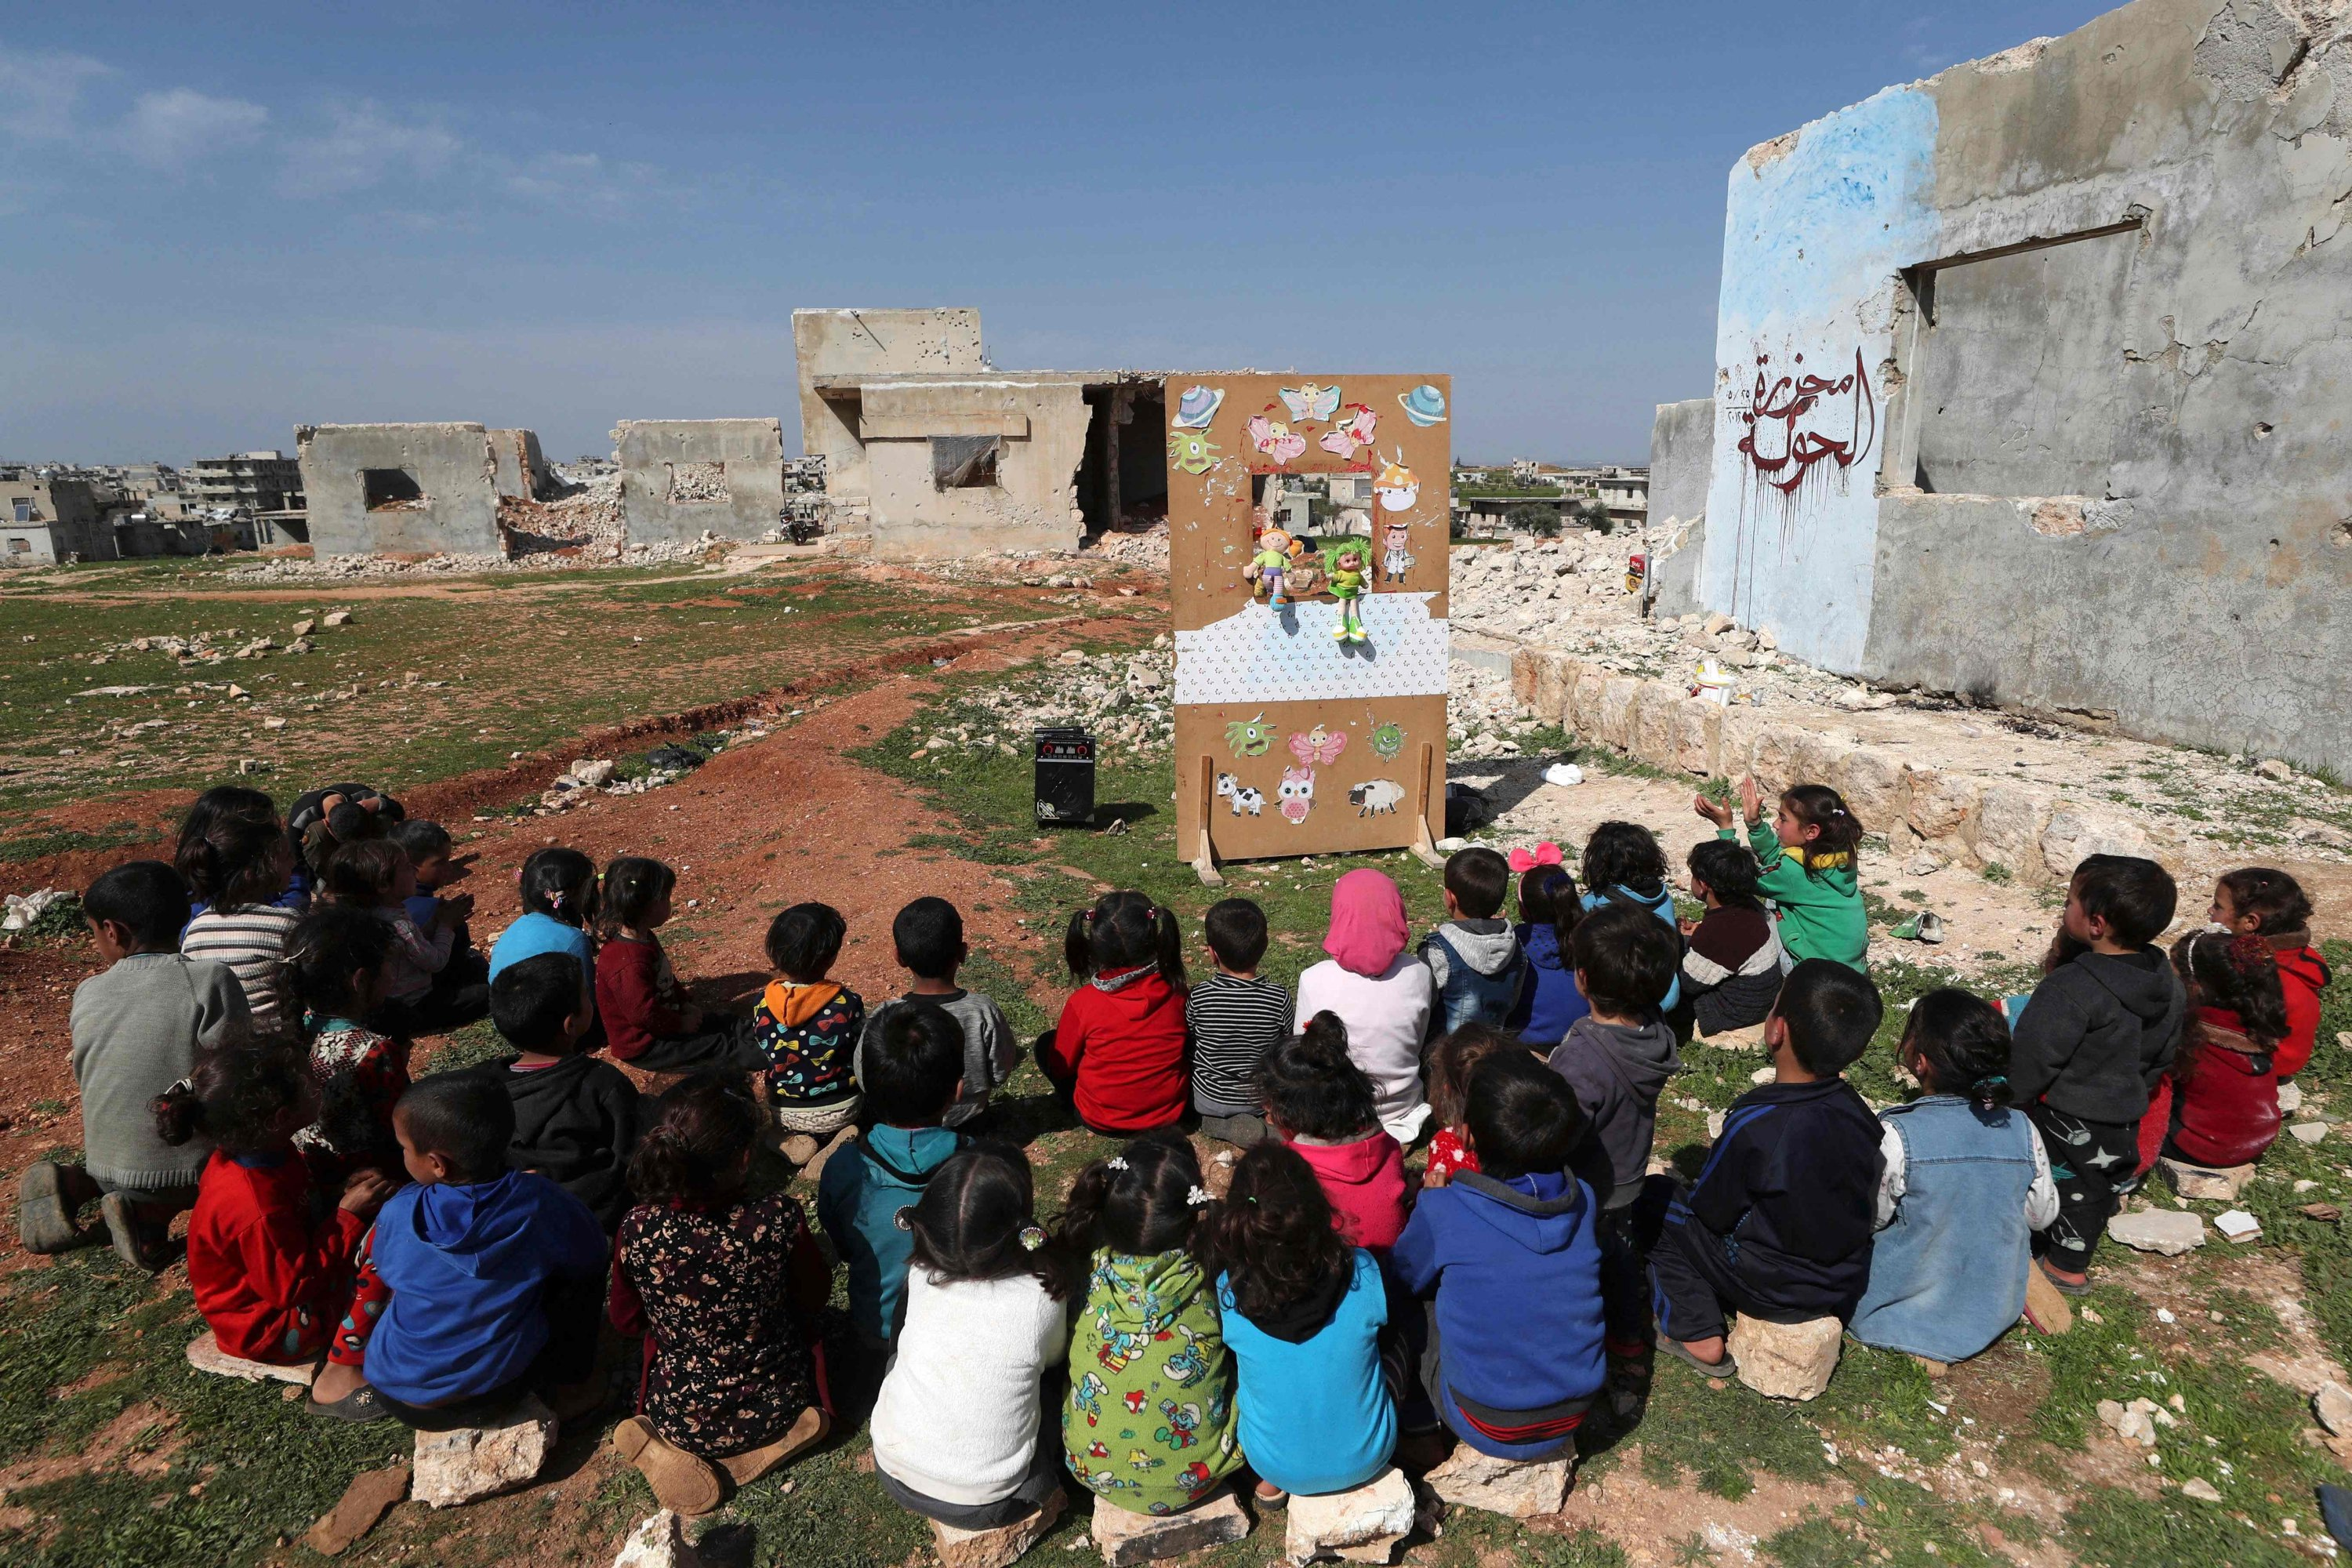 Syrian children watch a puppet show performed by a local theater group amid the ruins of buildings destroyed during Syria's civil war, in al-Fua, in the country's northwestern Idlib, Syria, March 30, 2021. (Photo by Omar Haj Kadour via AFP)